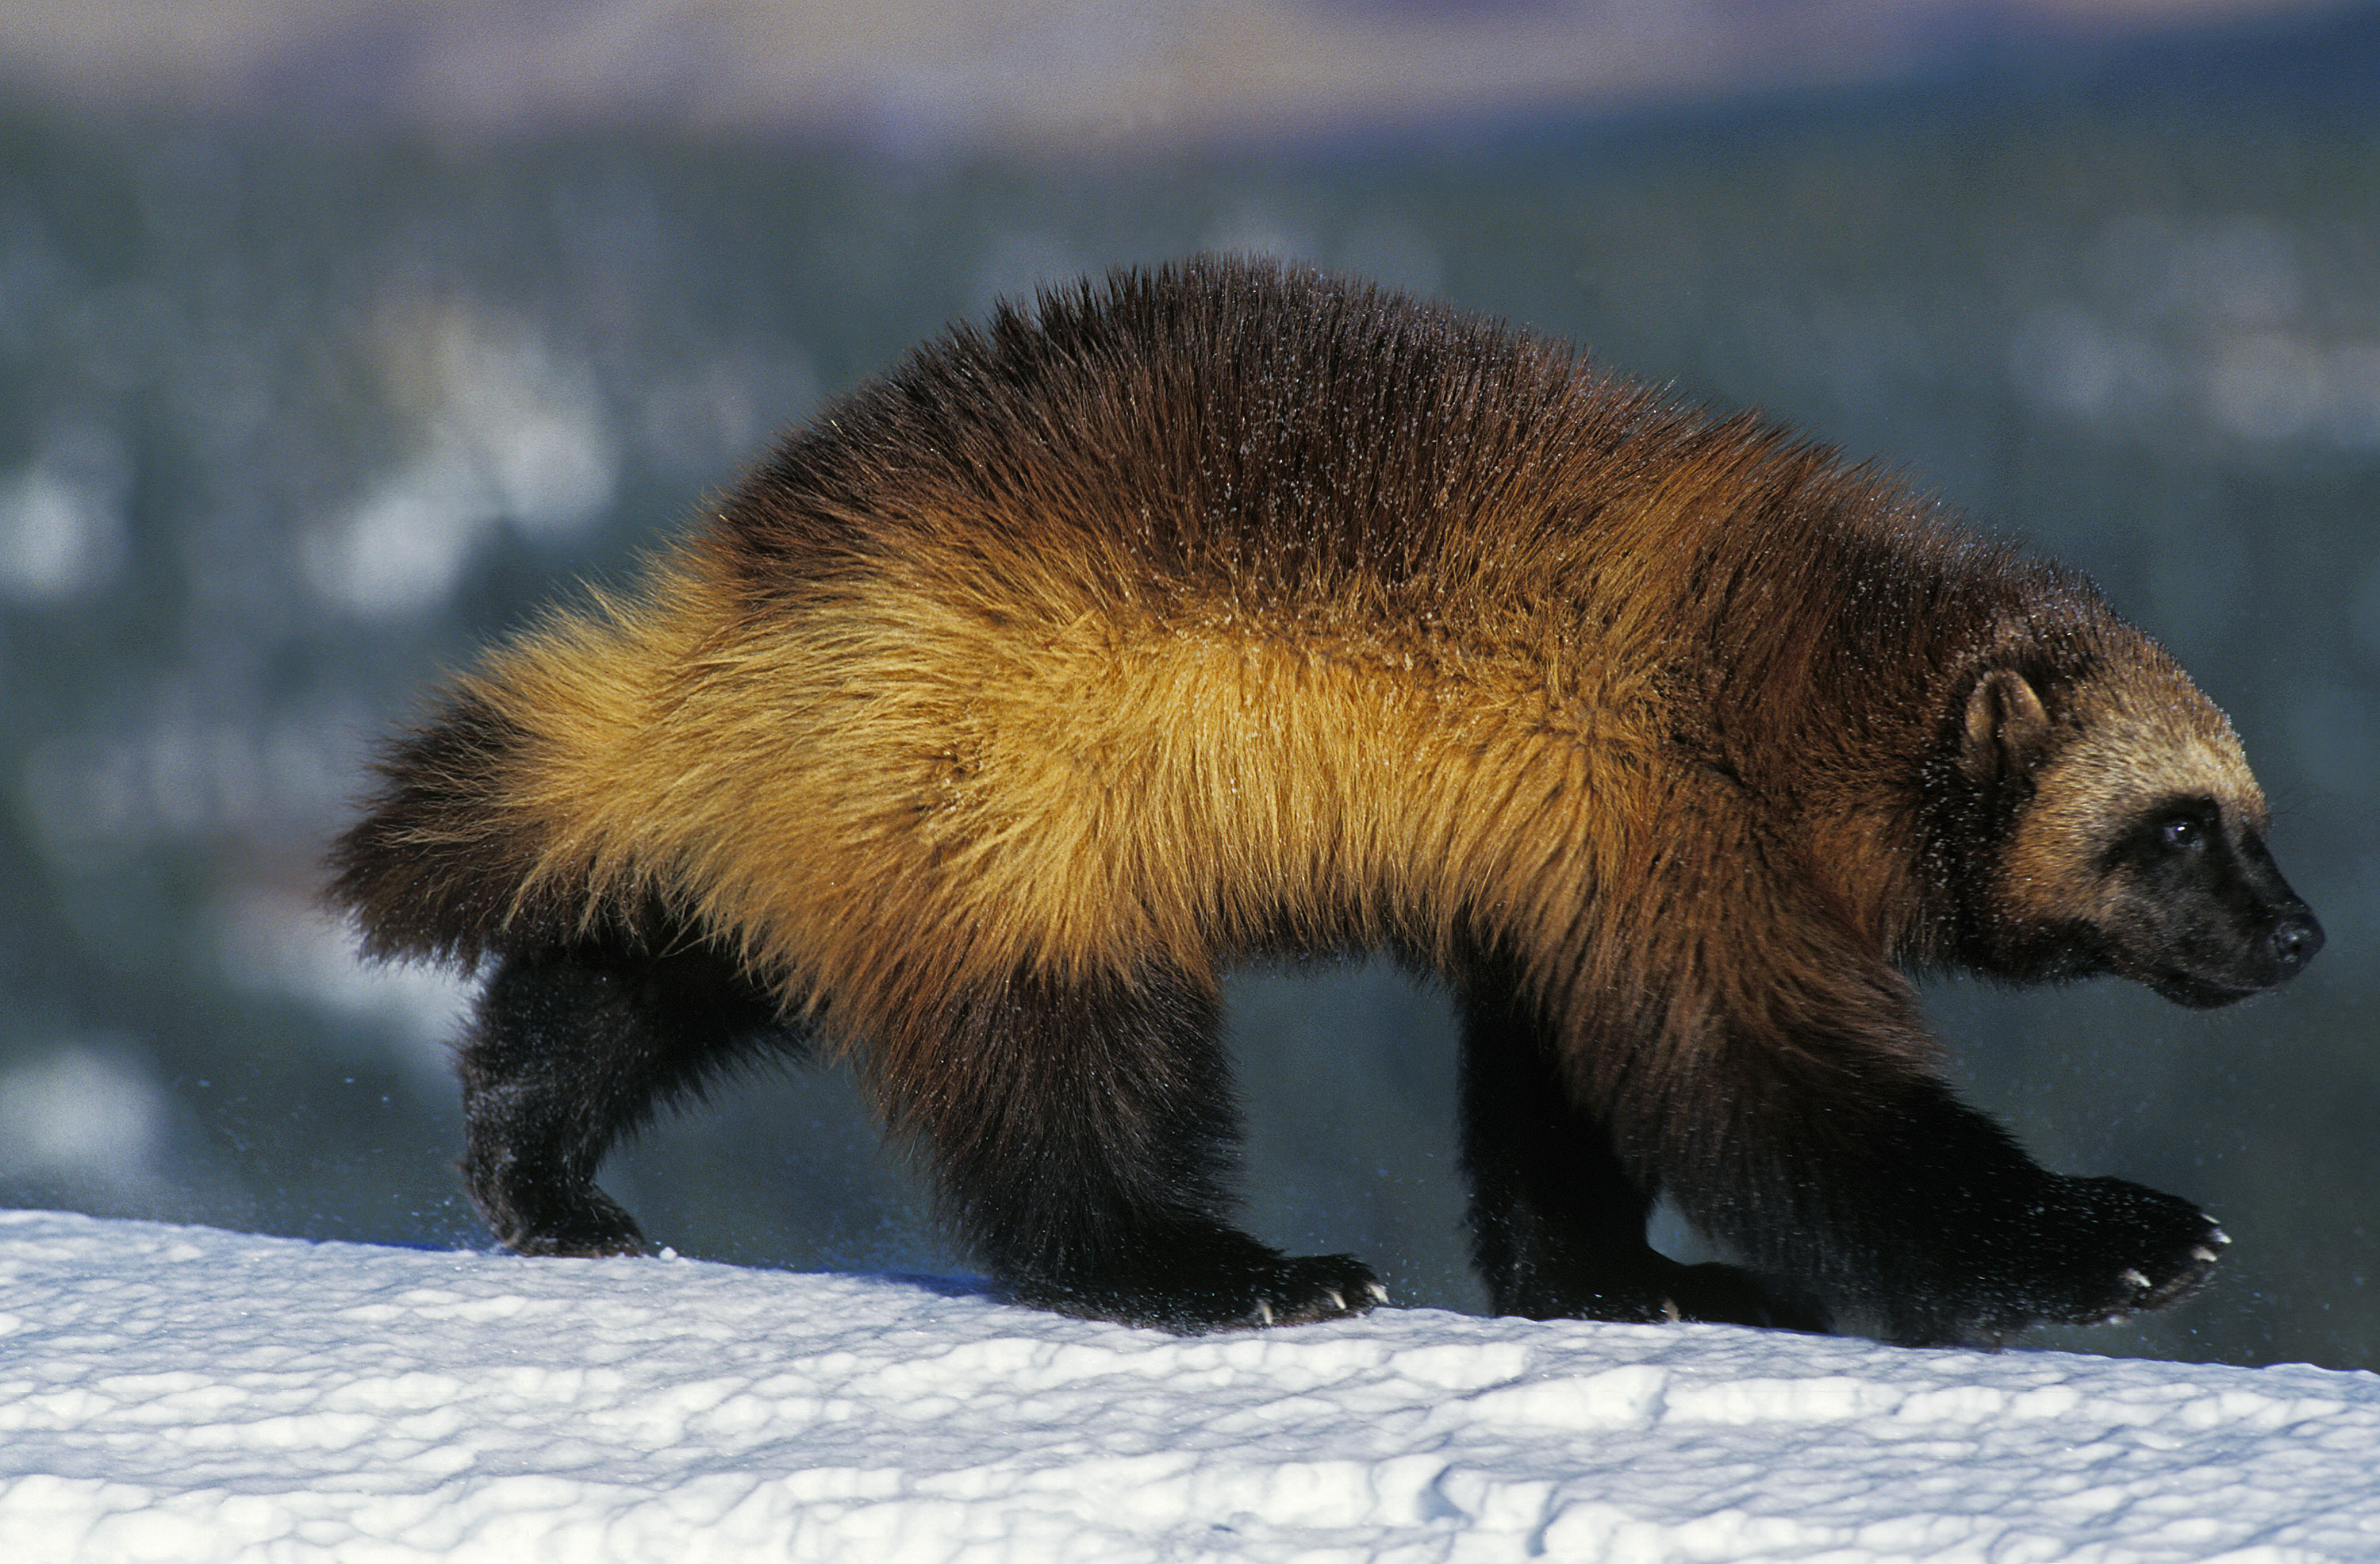 When a woman said she saw a wolverine on a Washington state beach, a wildlife official didn't believe her